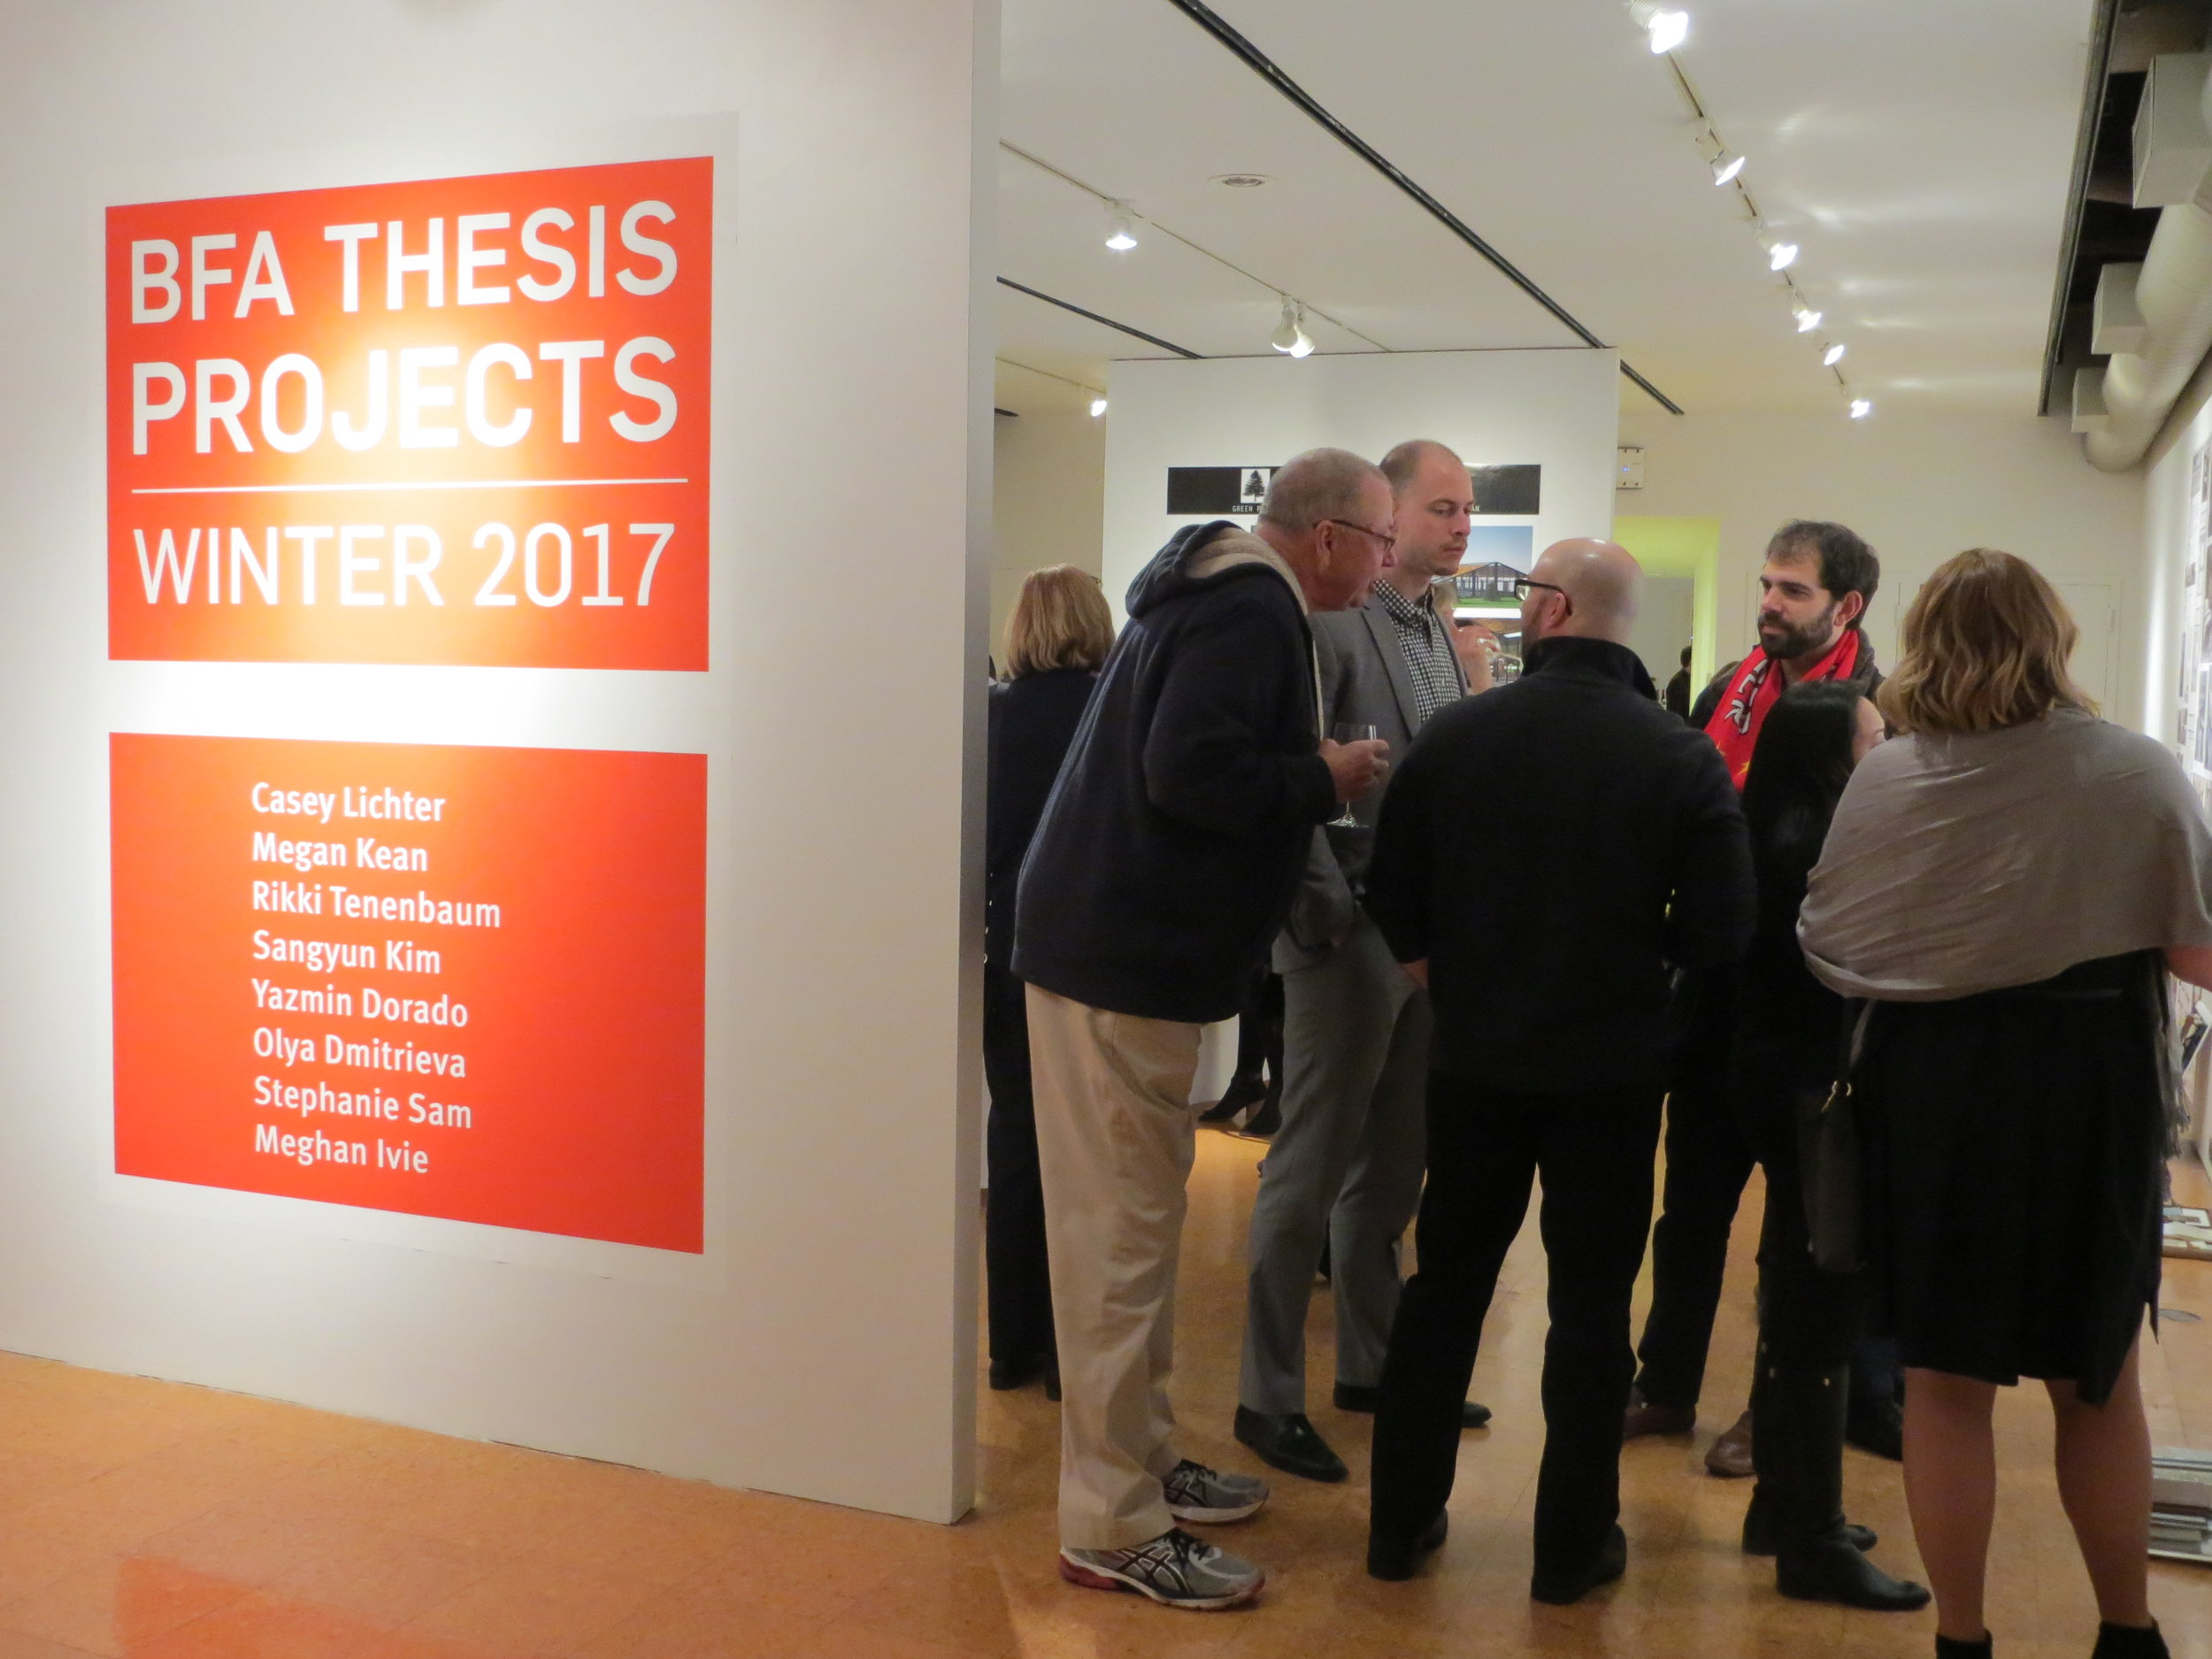 bfa-2017-winter-thesis-projects-exhibition_32712078966_o.jpg